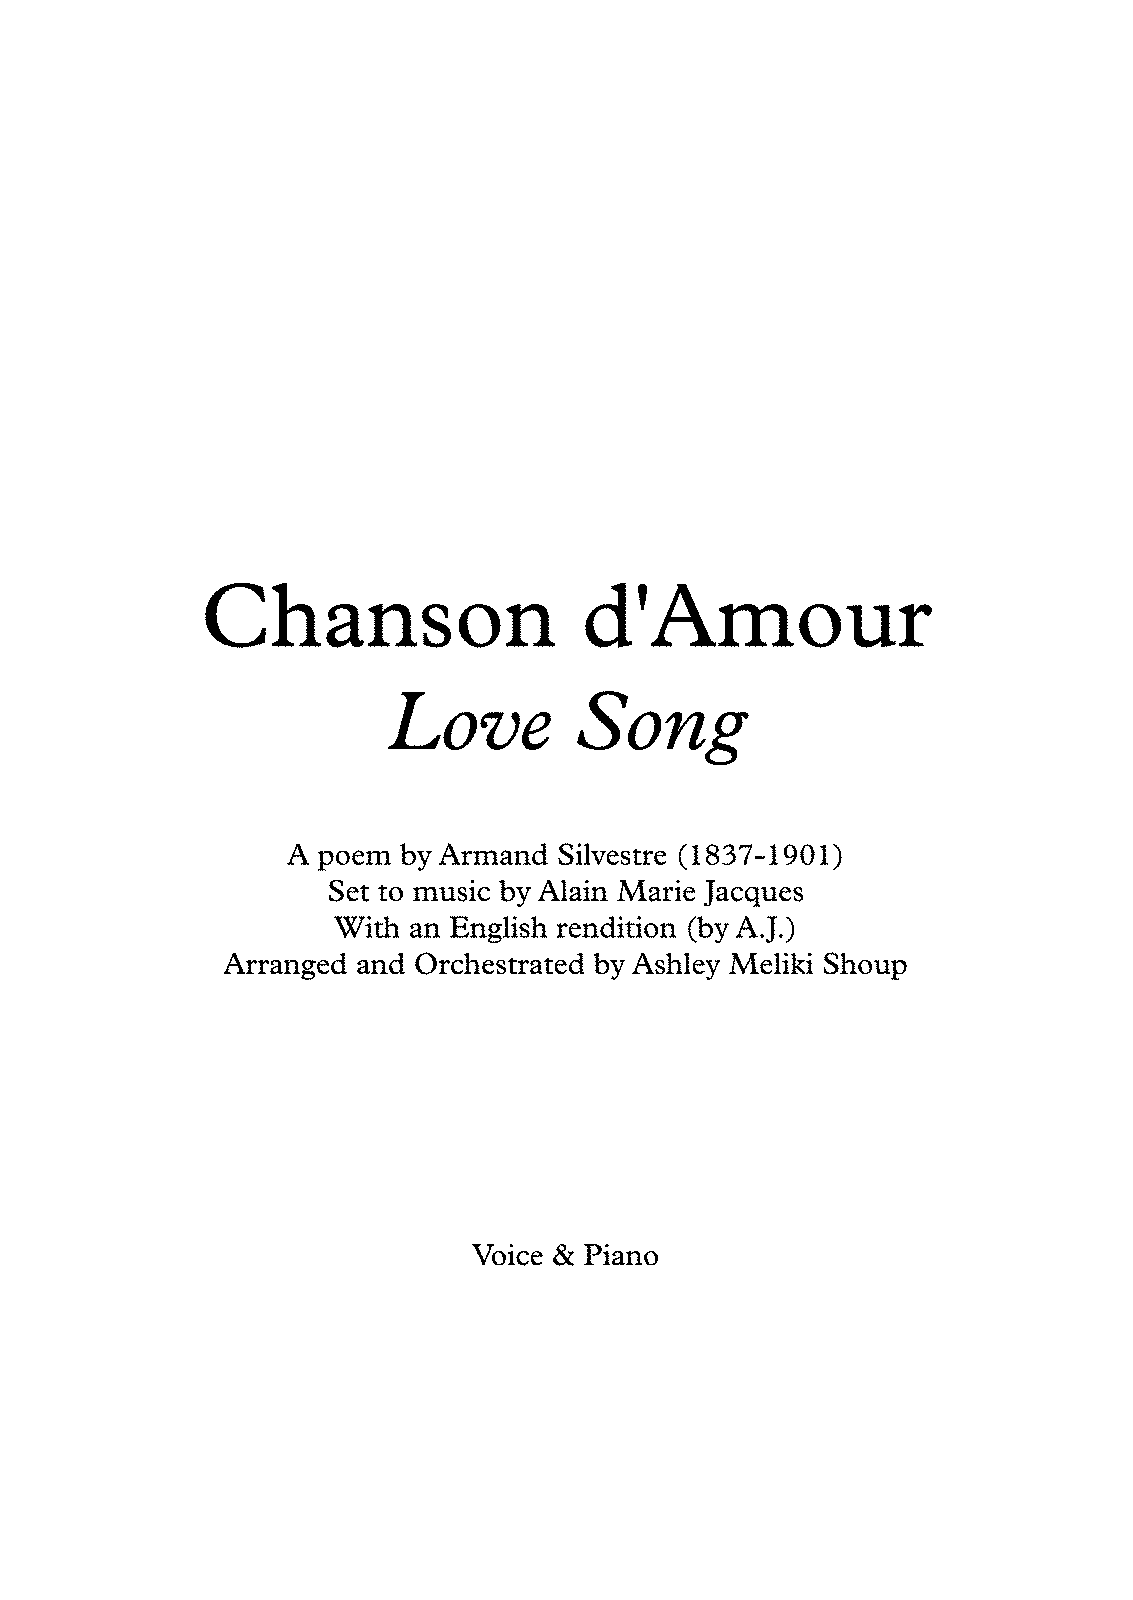 PMLP566355-Chanson d'Amour - Love Song.pdf